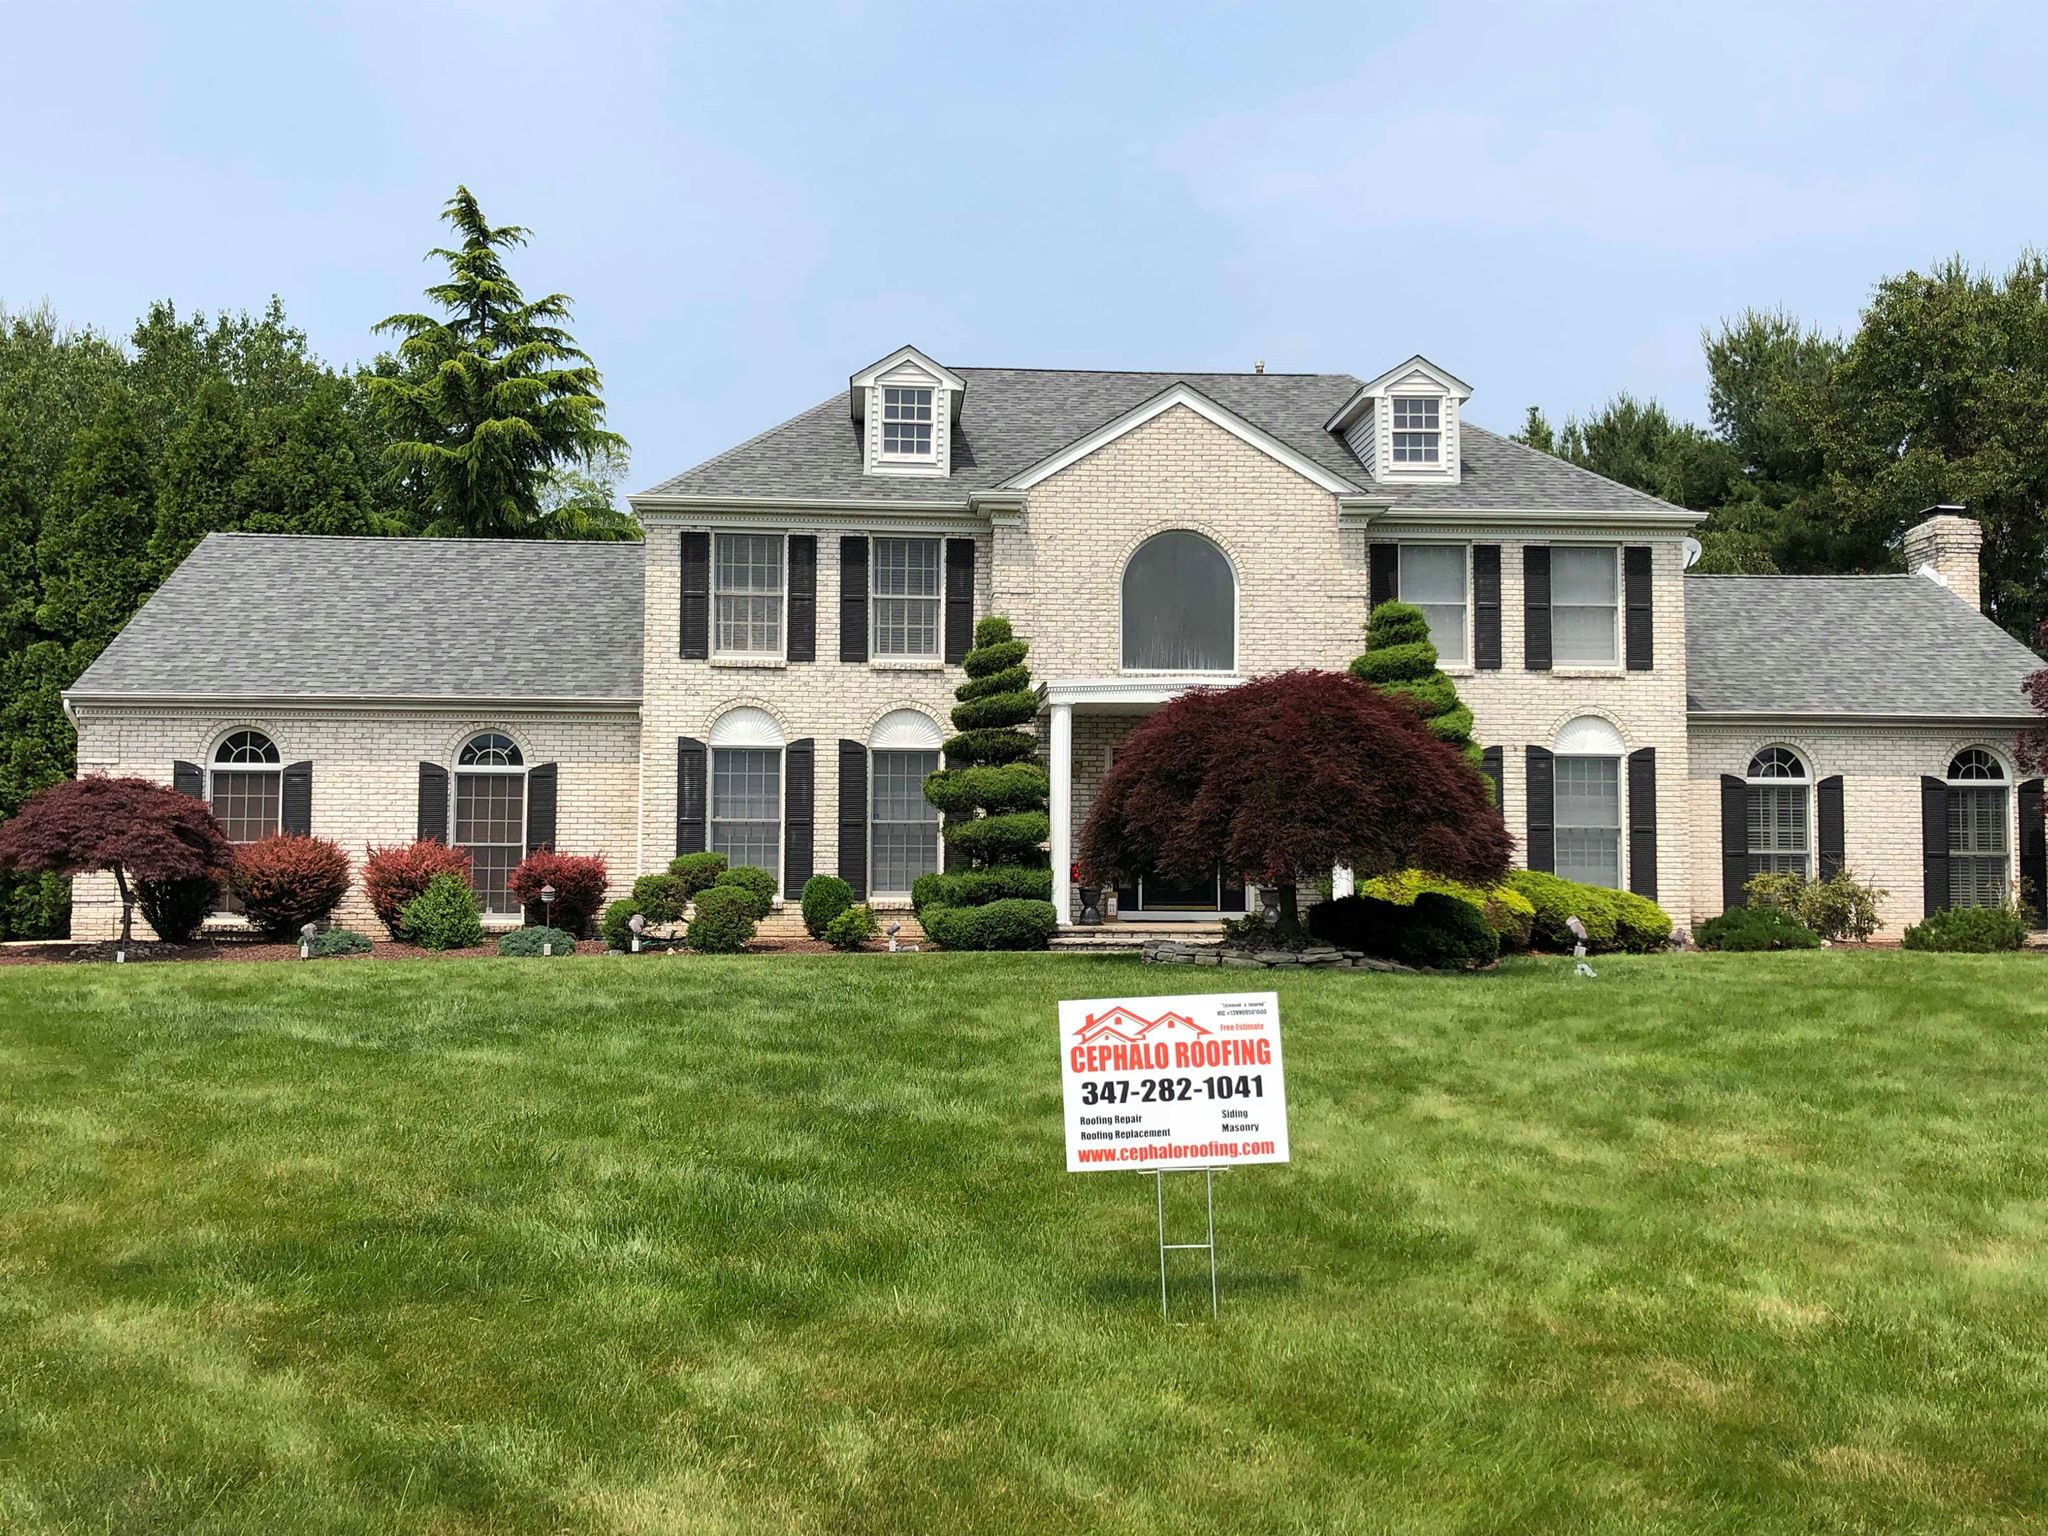 Owens Corning Roofing Shingles Cephalo Roofing